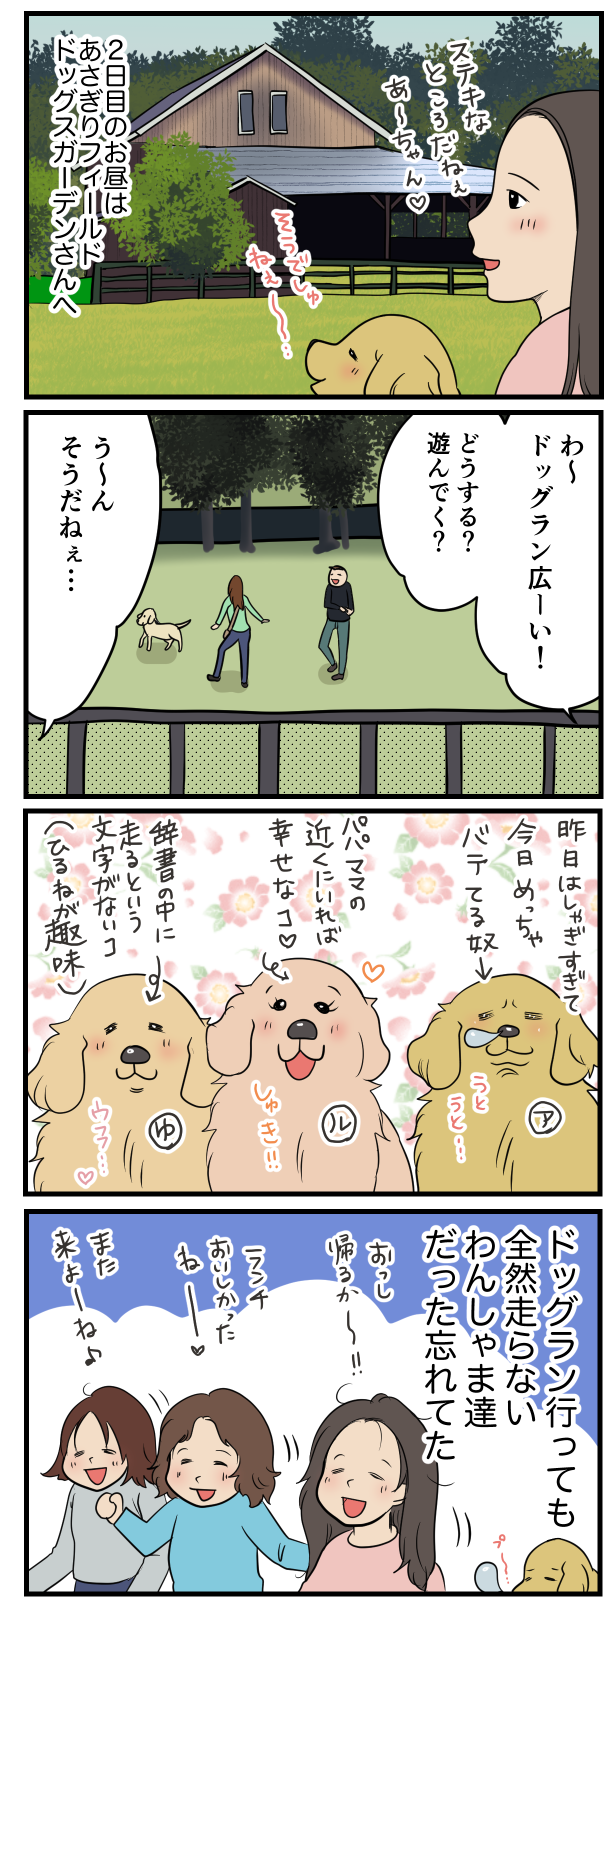 2018060818455957a.png